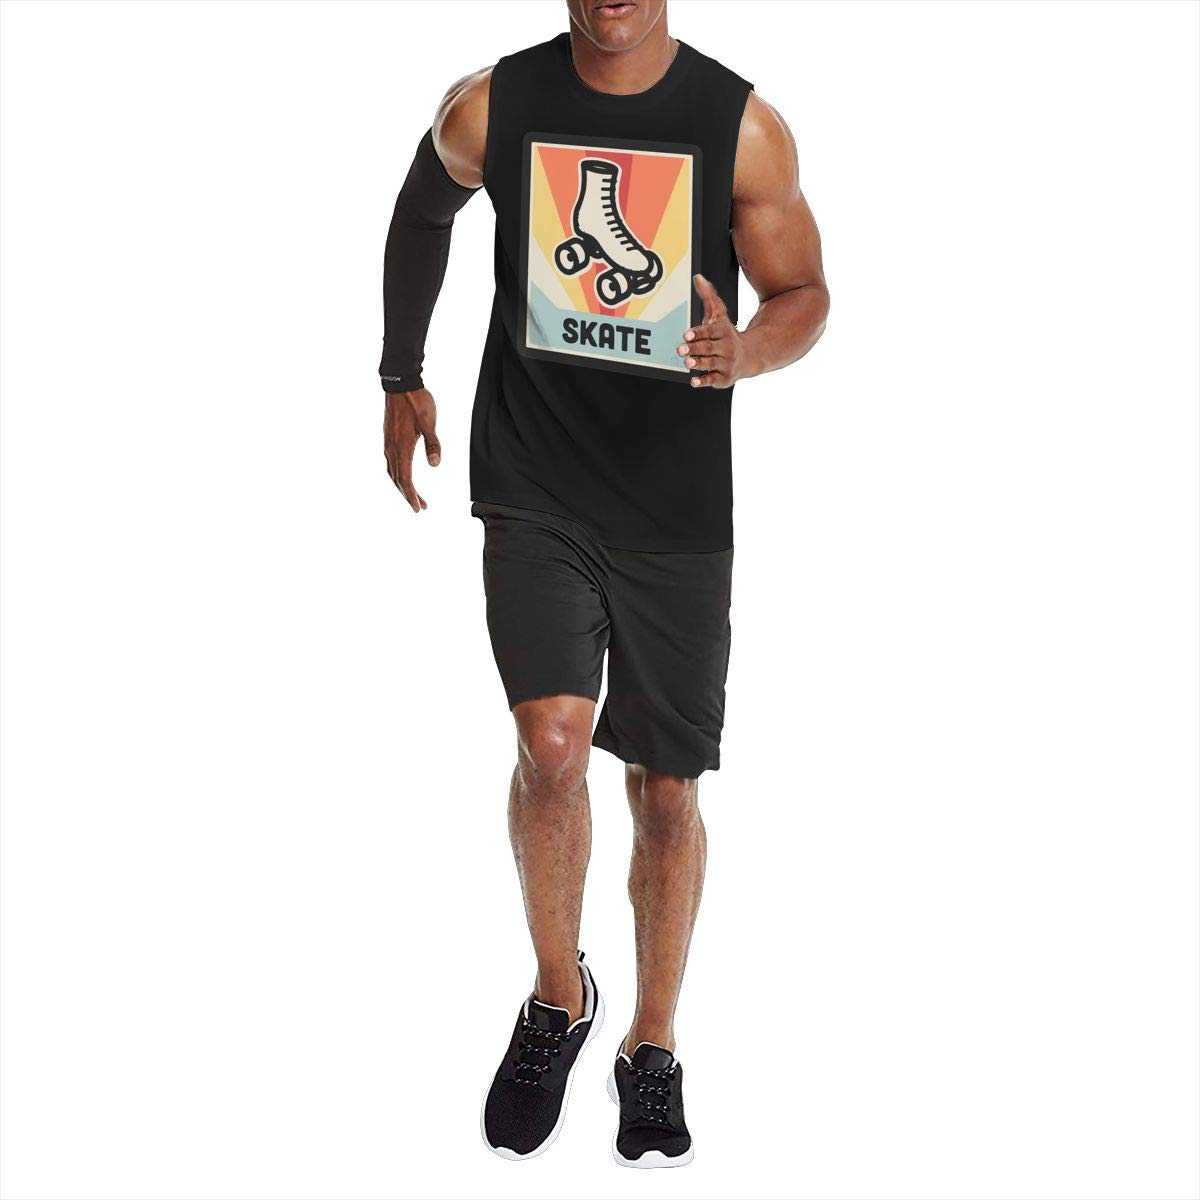 Vintage 70s Style Roller Skating Mens Gym Workout Tank Top Underwaist